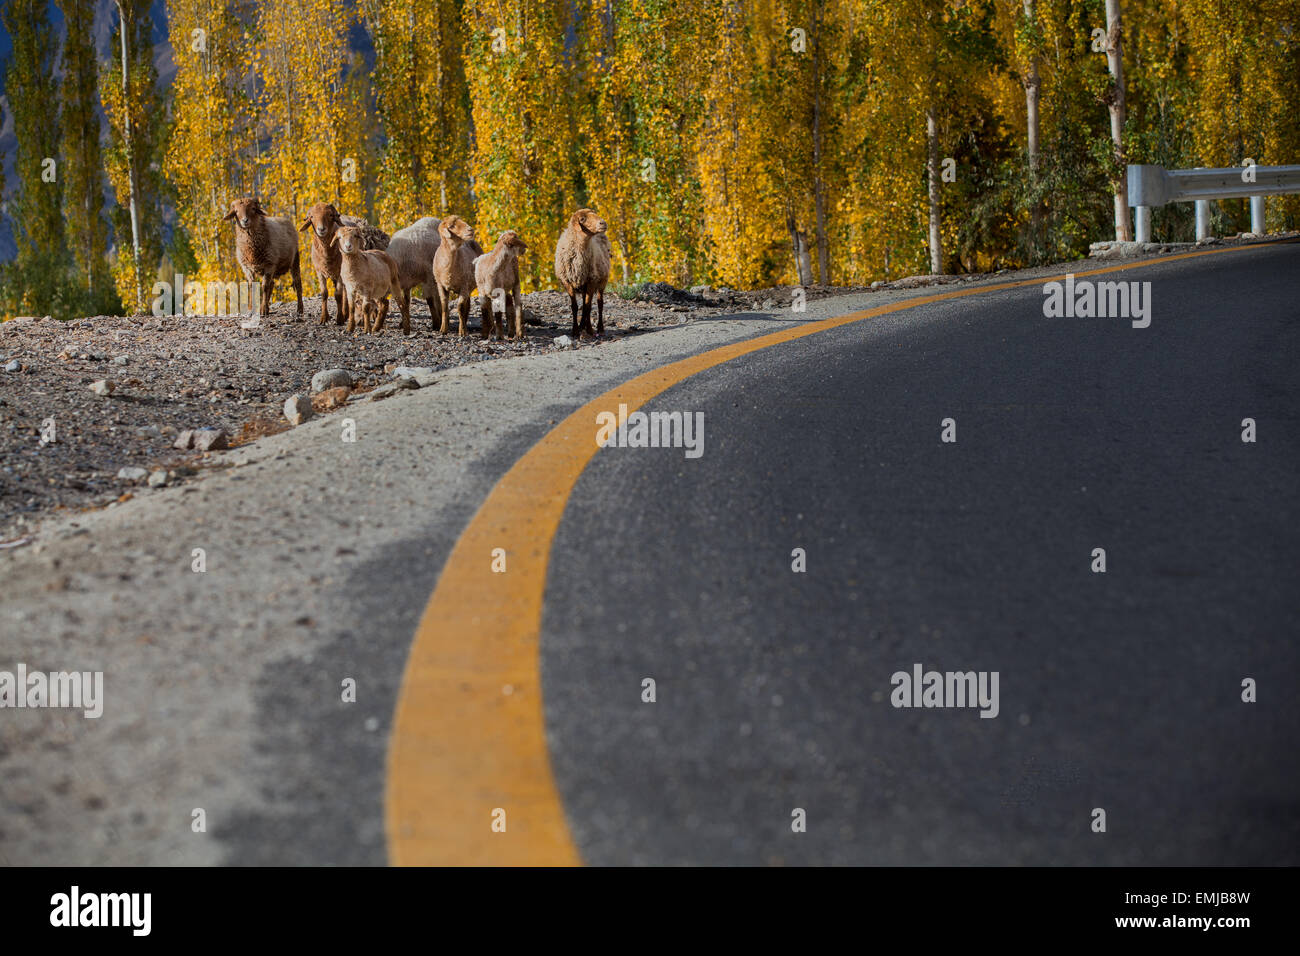 Animals waiting alongside highway - Stock Image